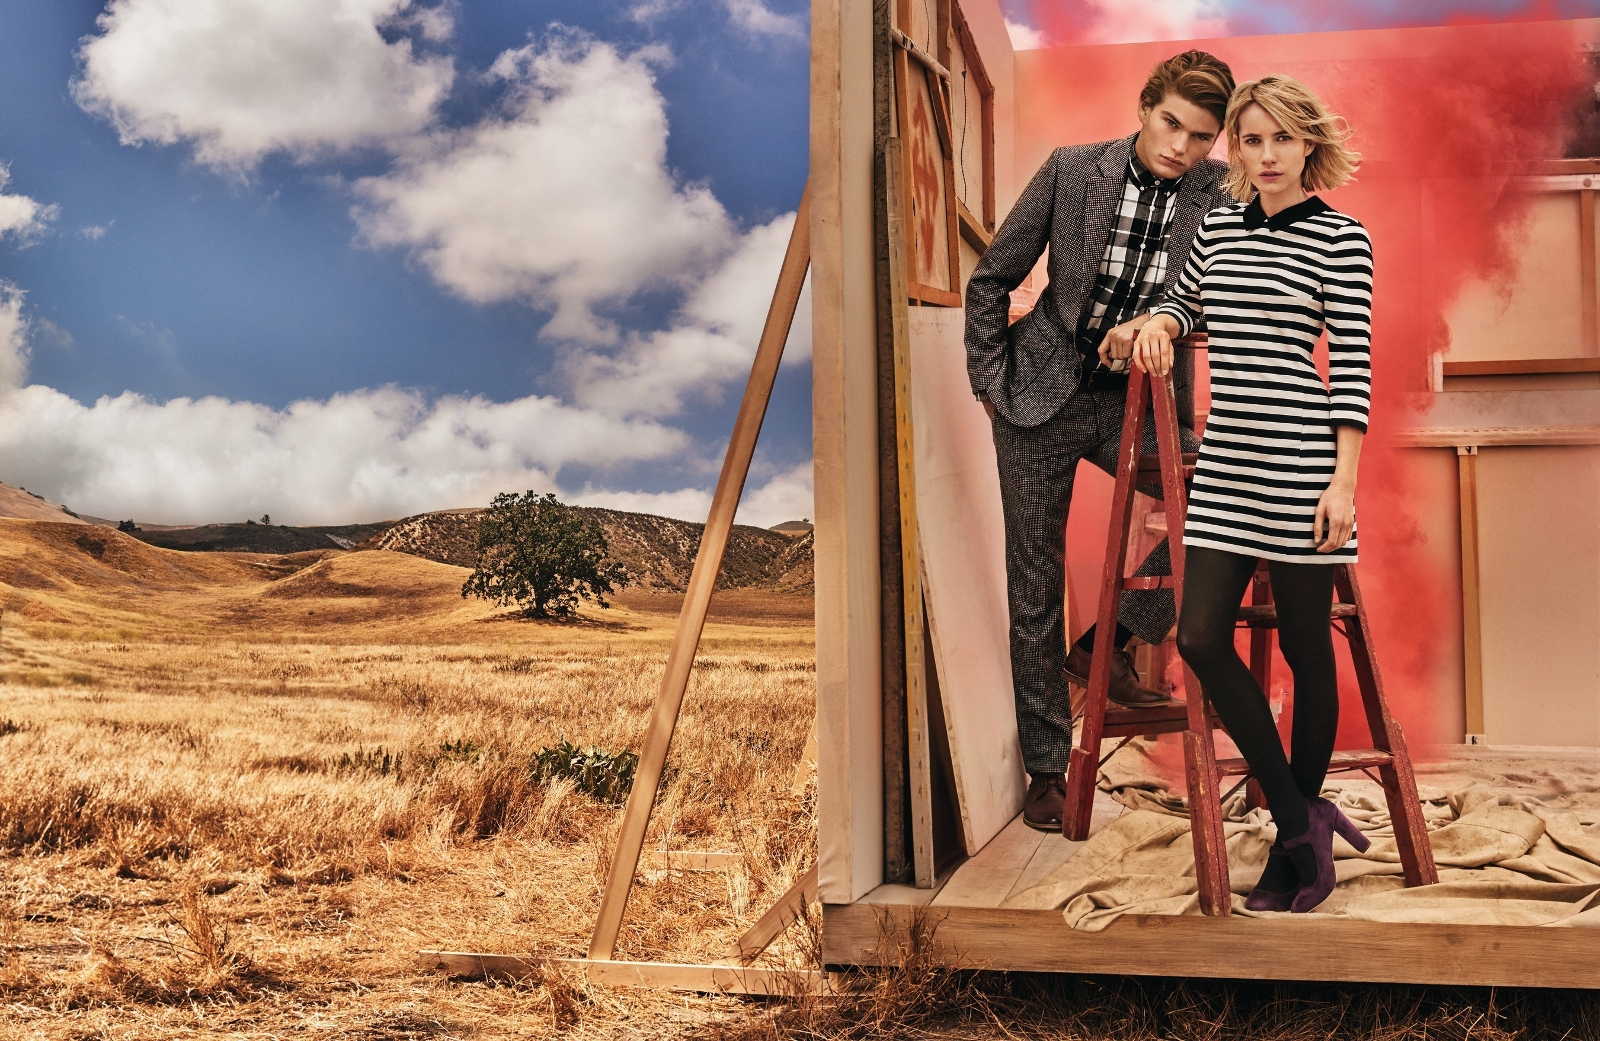 Emma Roberts has a new role, the face of Canvas by Lands' End's fall campaign.